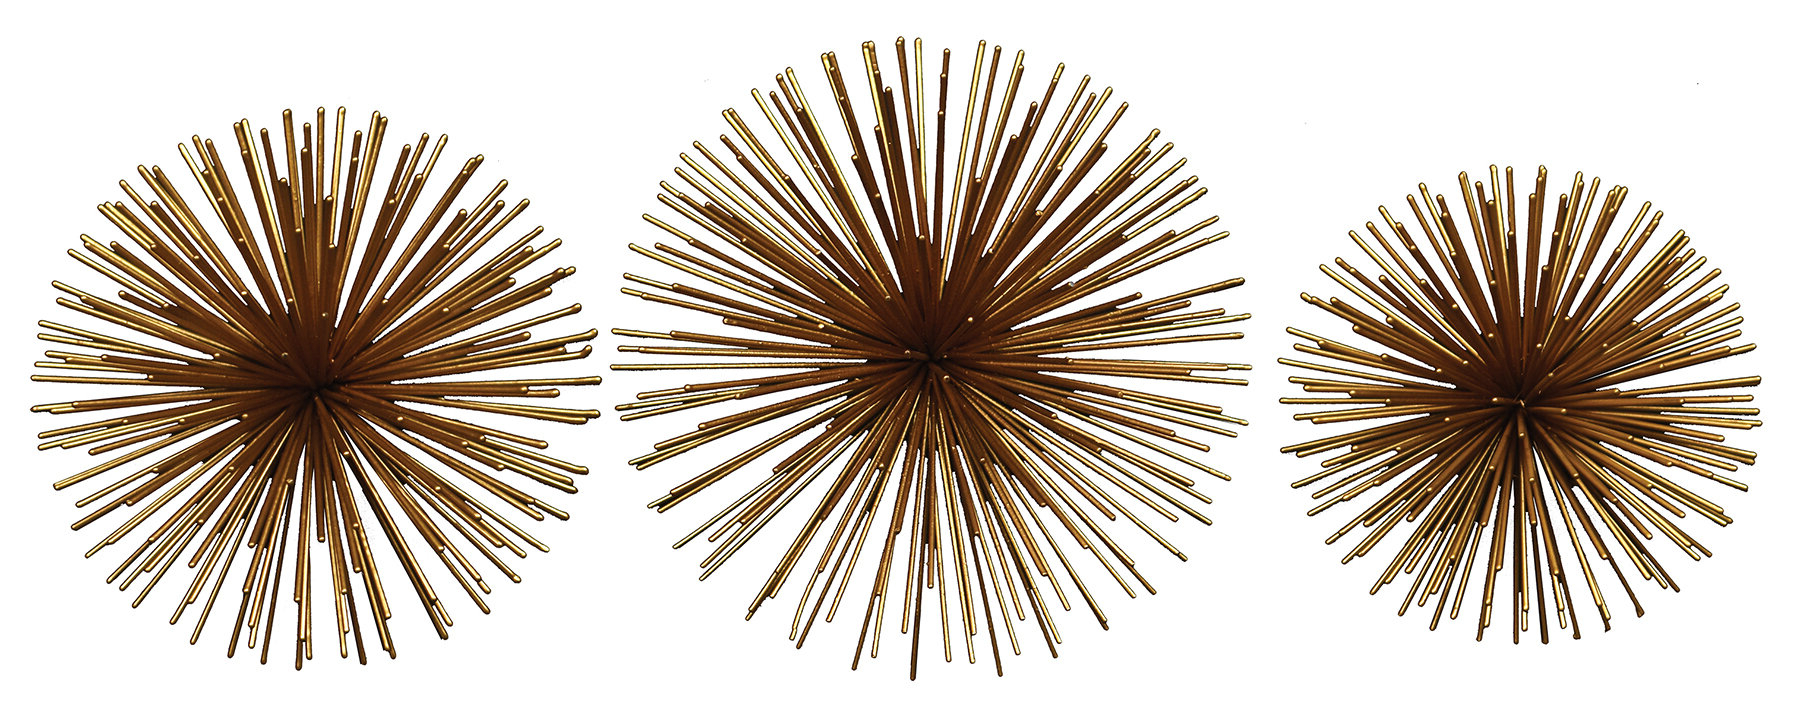 Widely Used Alvarez Starburst Wall Décor With Regard To 2 Piece Starburst Wall Décor Set By Wrought Studio (View 3 of 20)